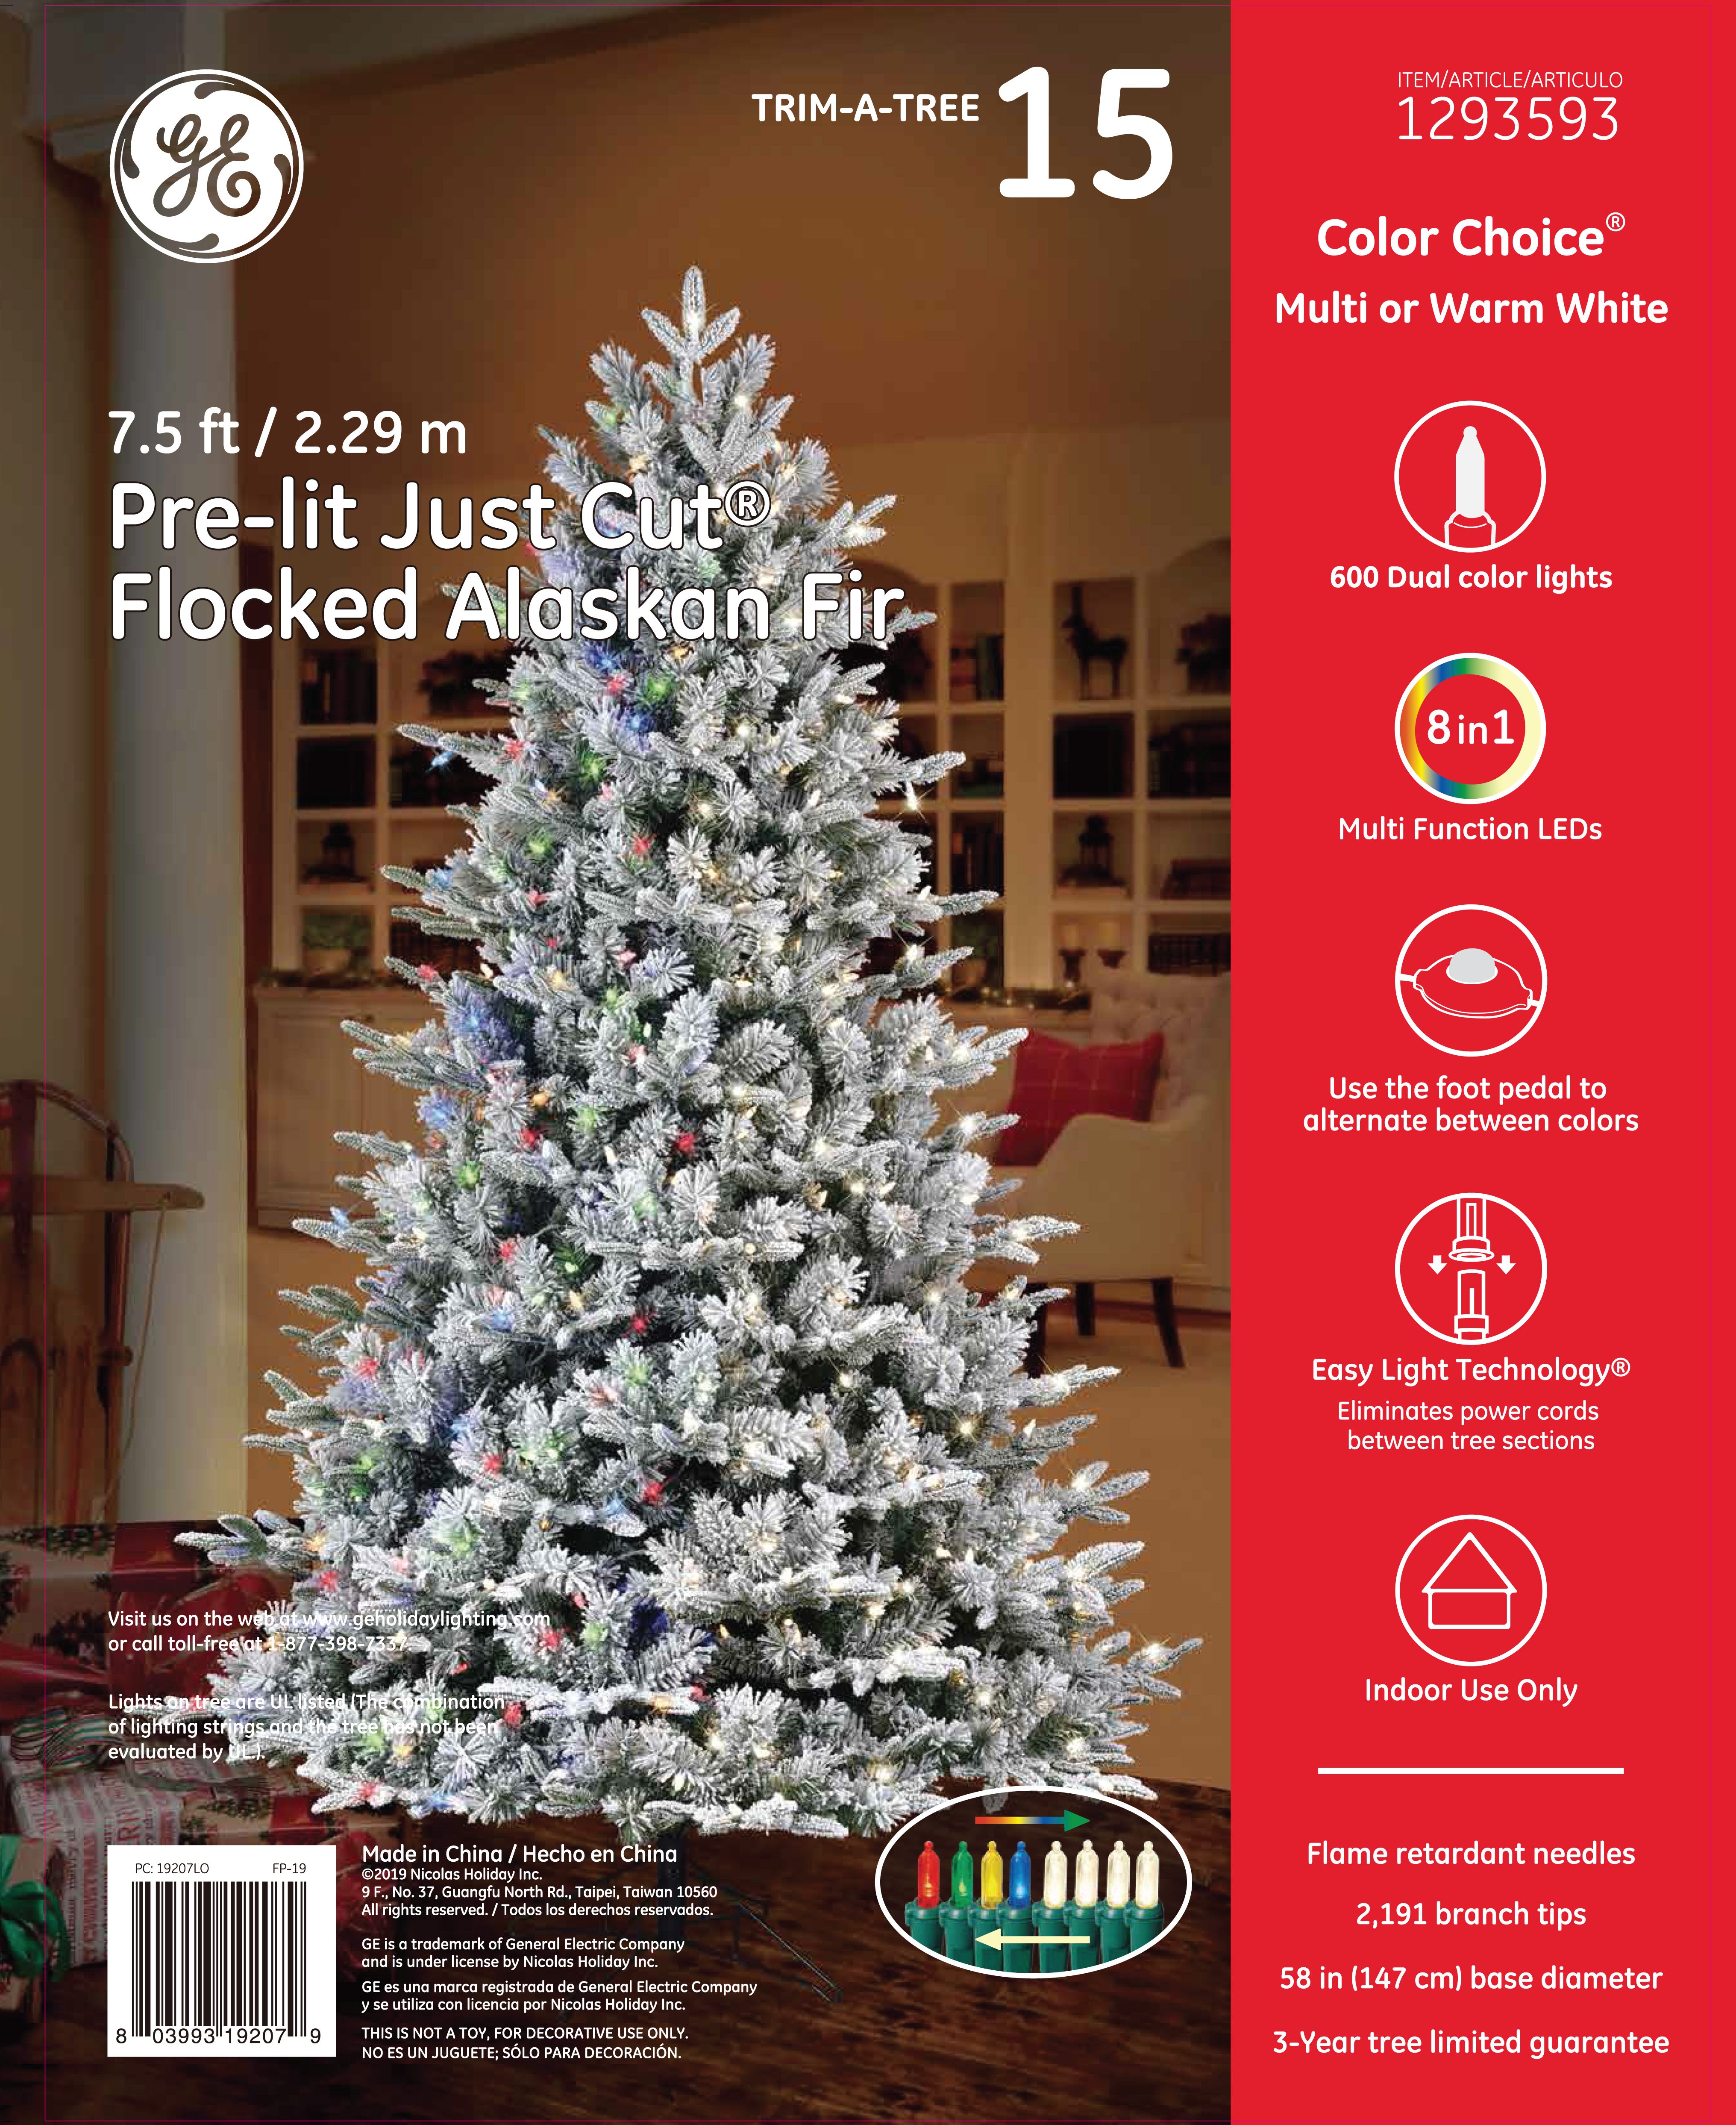 19207 Ge Just Cut Flocked Alaskan Fir 7 5 Ft Color Choice Led 600ct 7mm Lights Multi Warm White Holiday Lighting Support